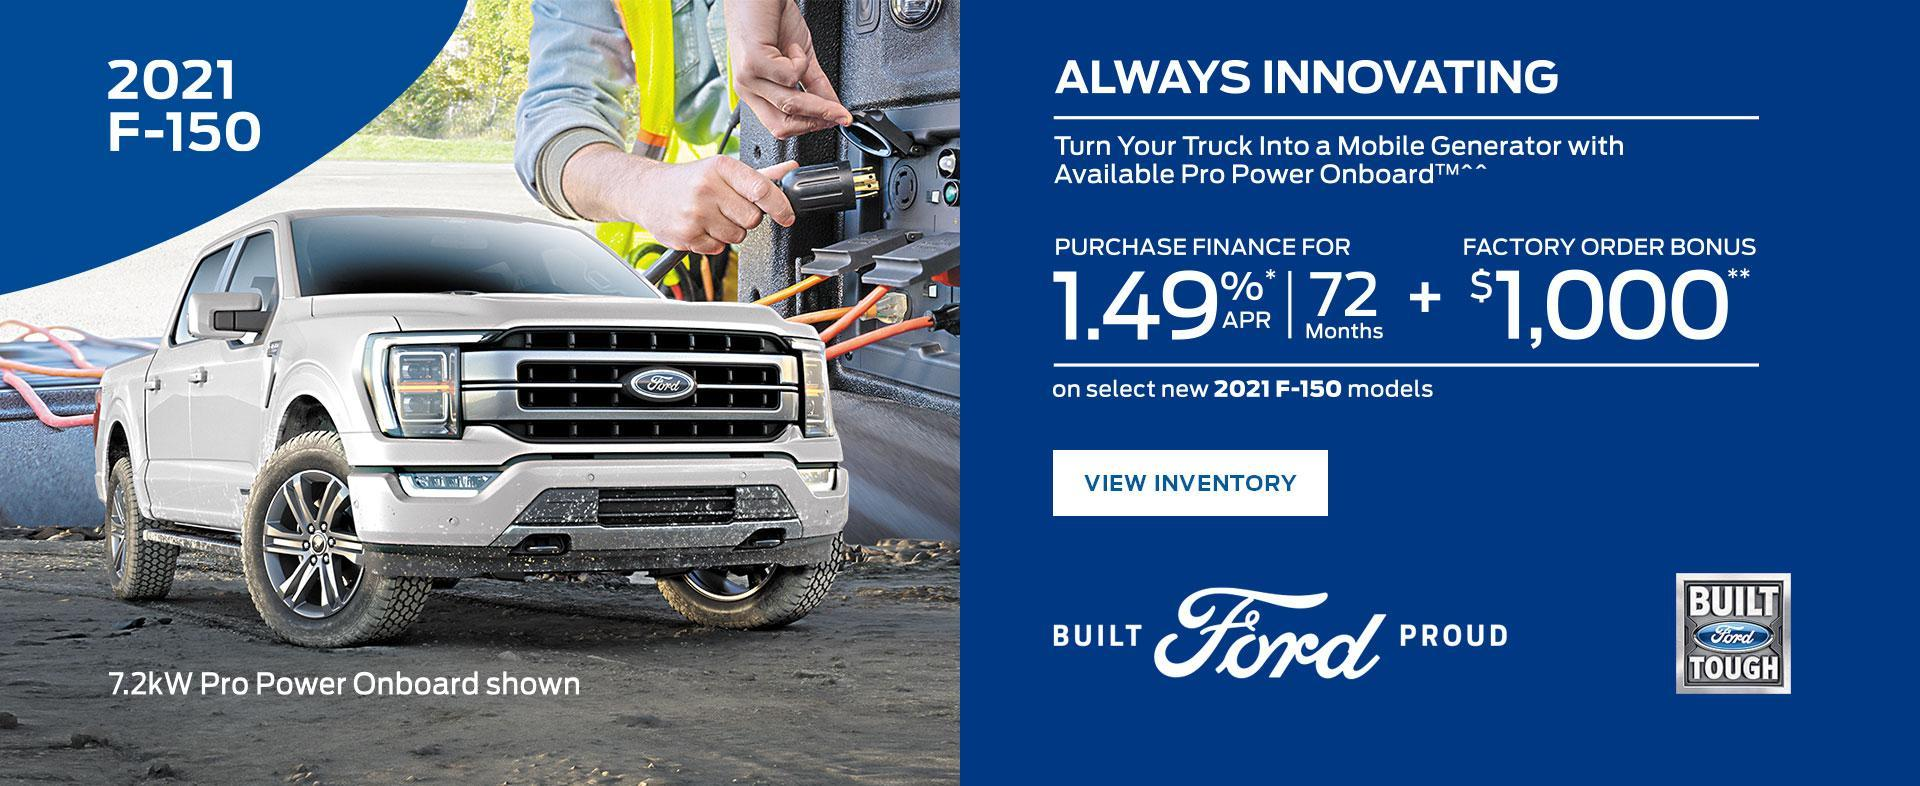 Ford F-150 | Ford of Canada